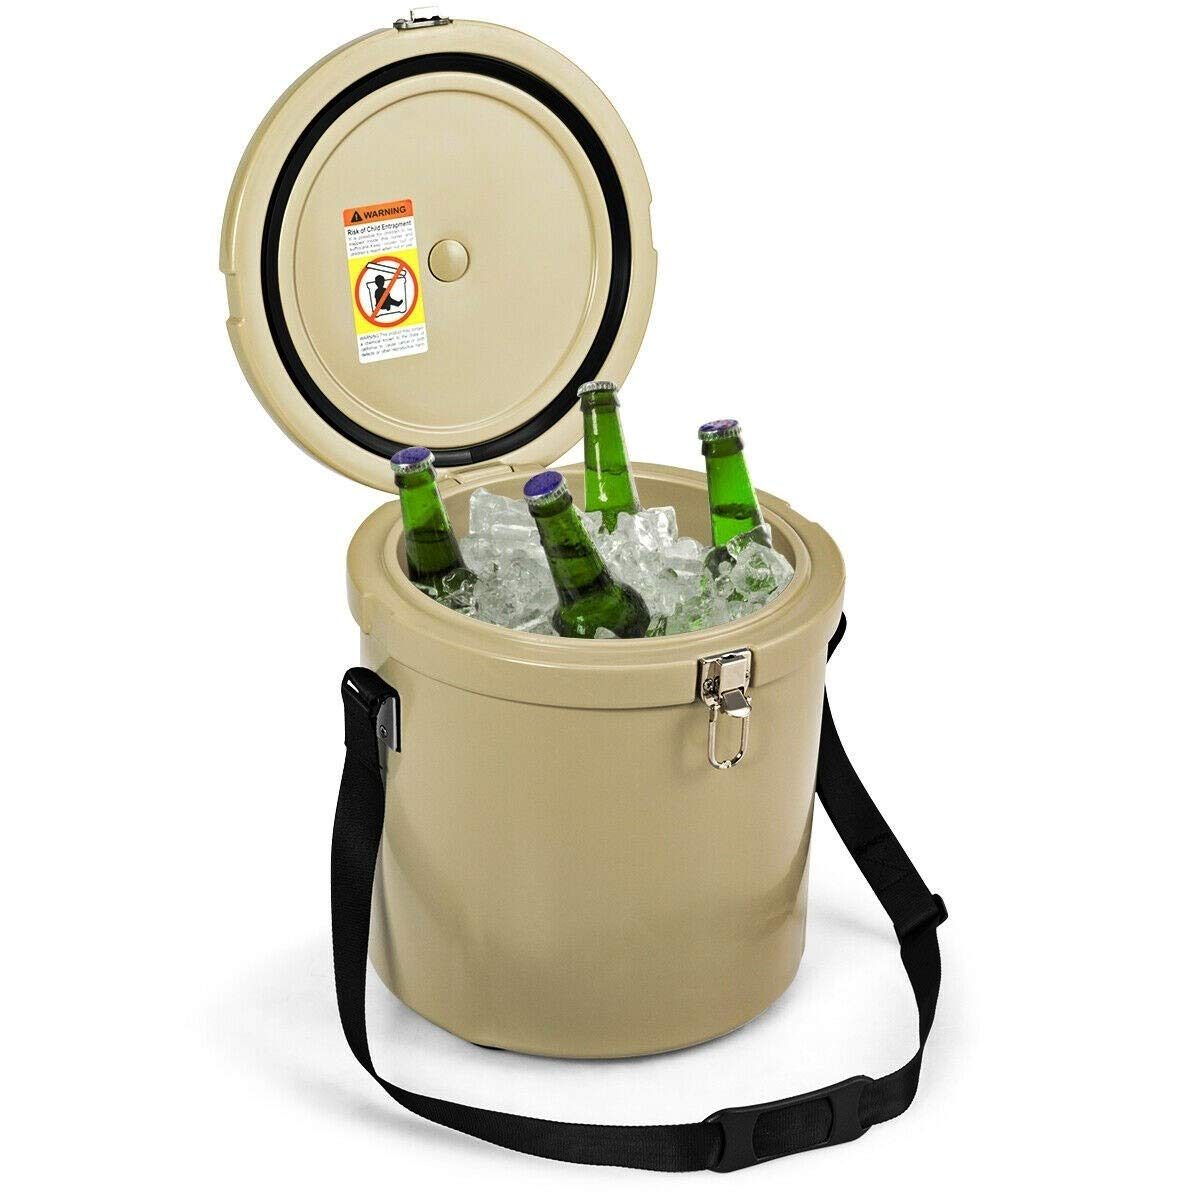 Lucky-gift - 13 Quart Portable Ice Cooler with Strap 18 Cans - Cooler Portable Ice Chest Box Food Beverage Drink Quart - Outdoor Beer Can Camping Storage Hard Rolling Boxes Party Picnic Patio by Lucky-gift